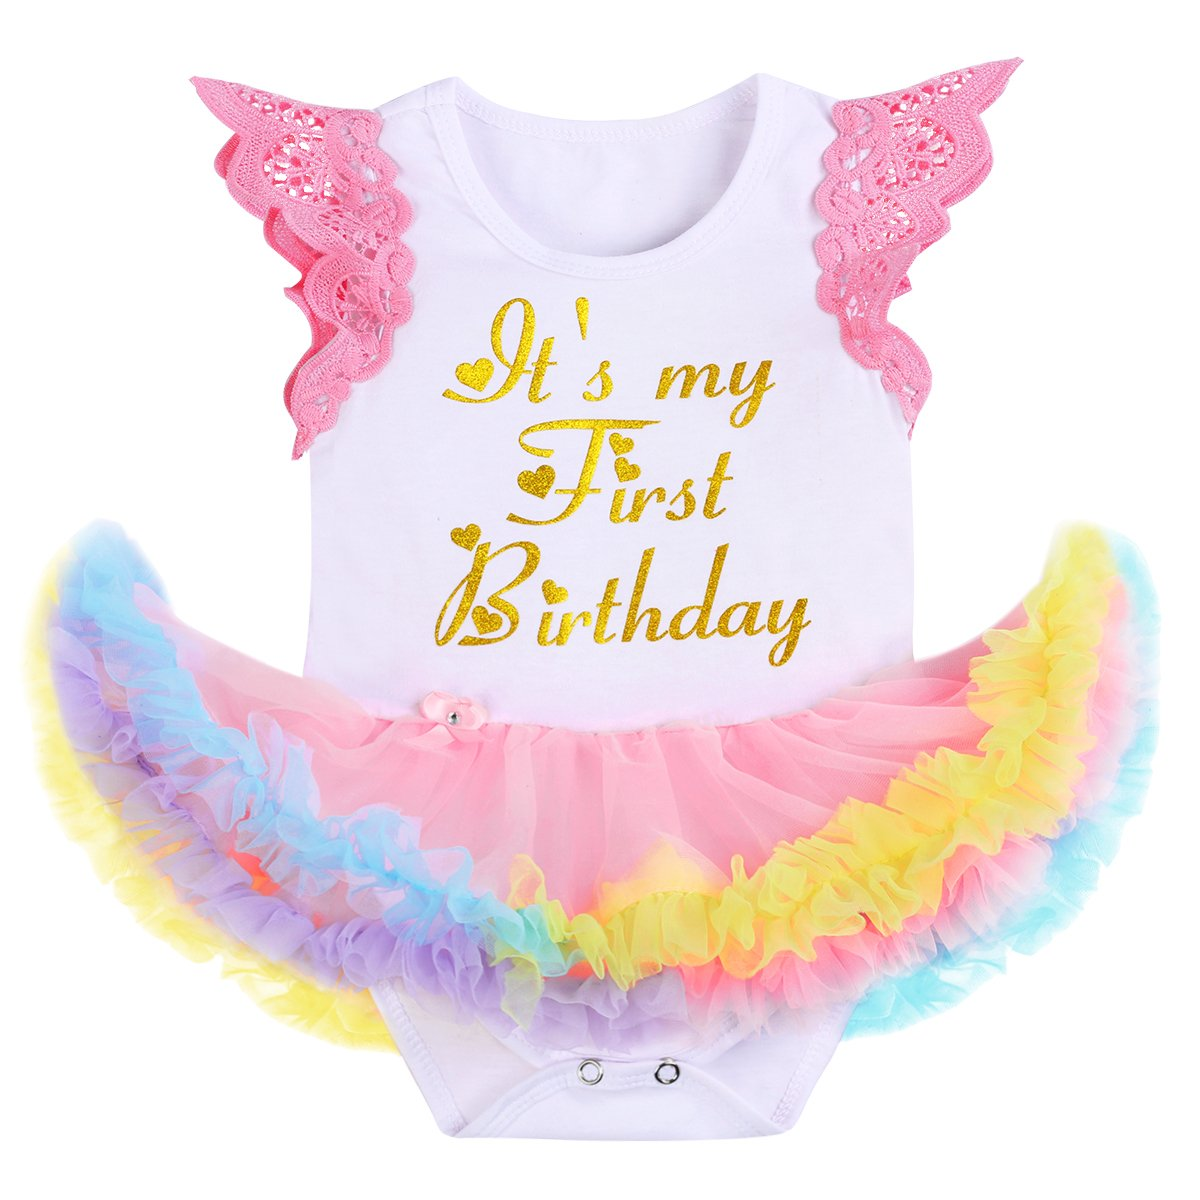 IBTOM CASTLE Baby Girl It's My 1st Birthday Outfits Unicorn Romper Tutu Dress